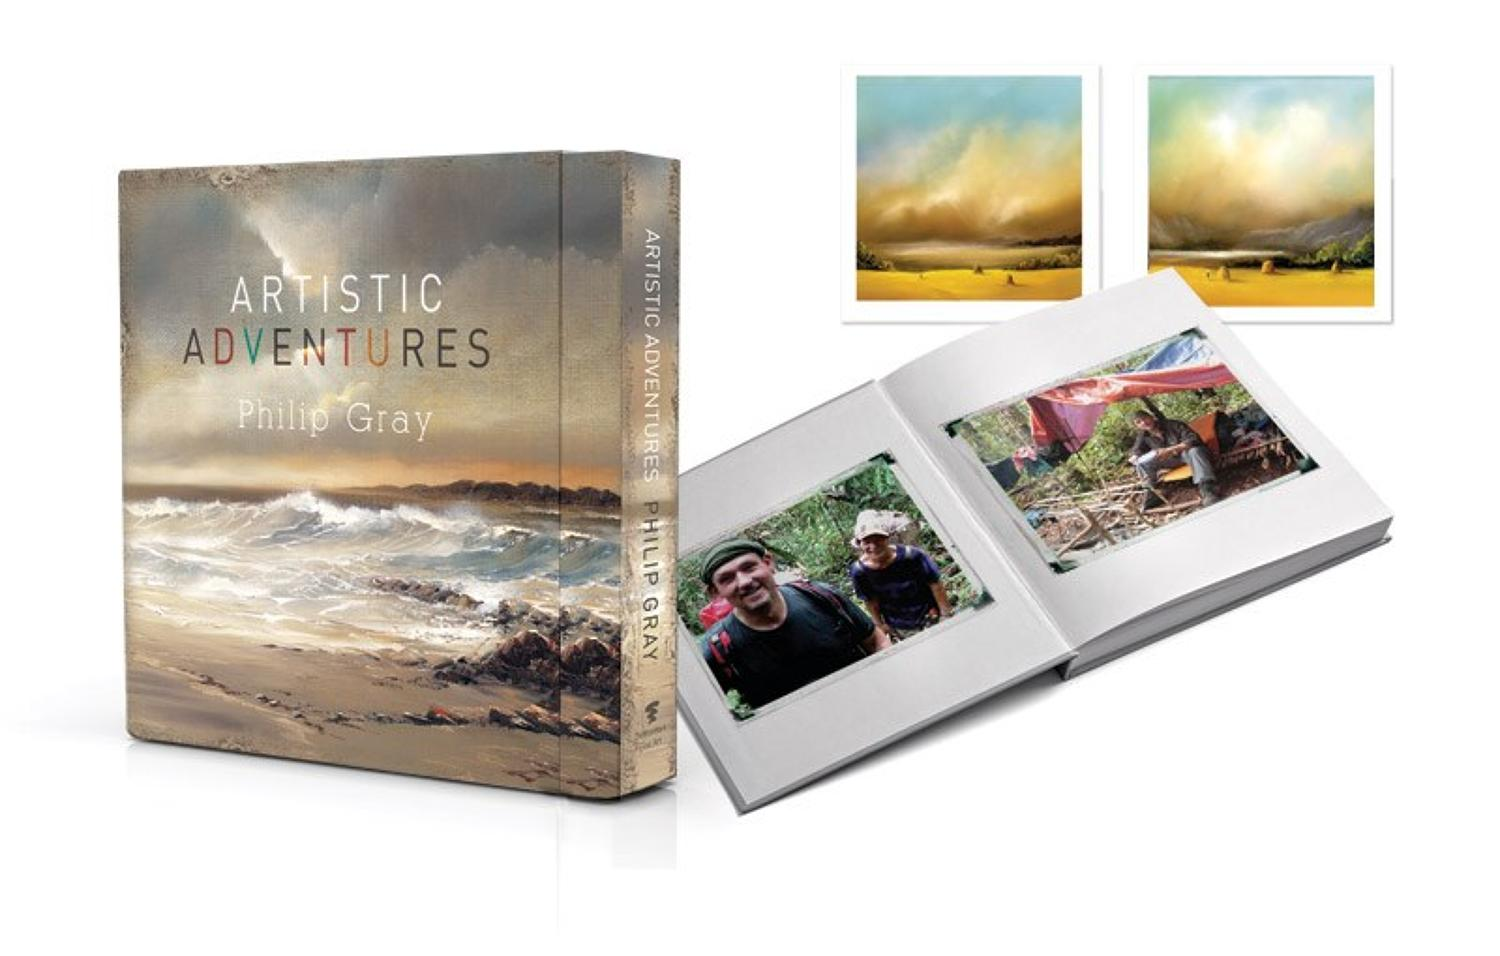 Artistic Adventures Ltd Edition Book By Philip Gray